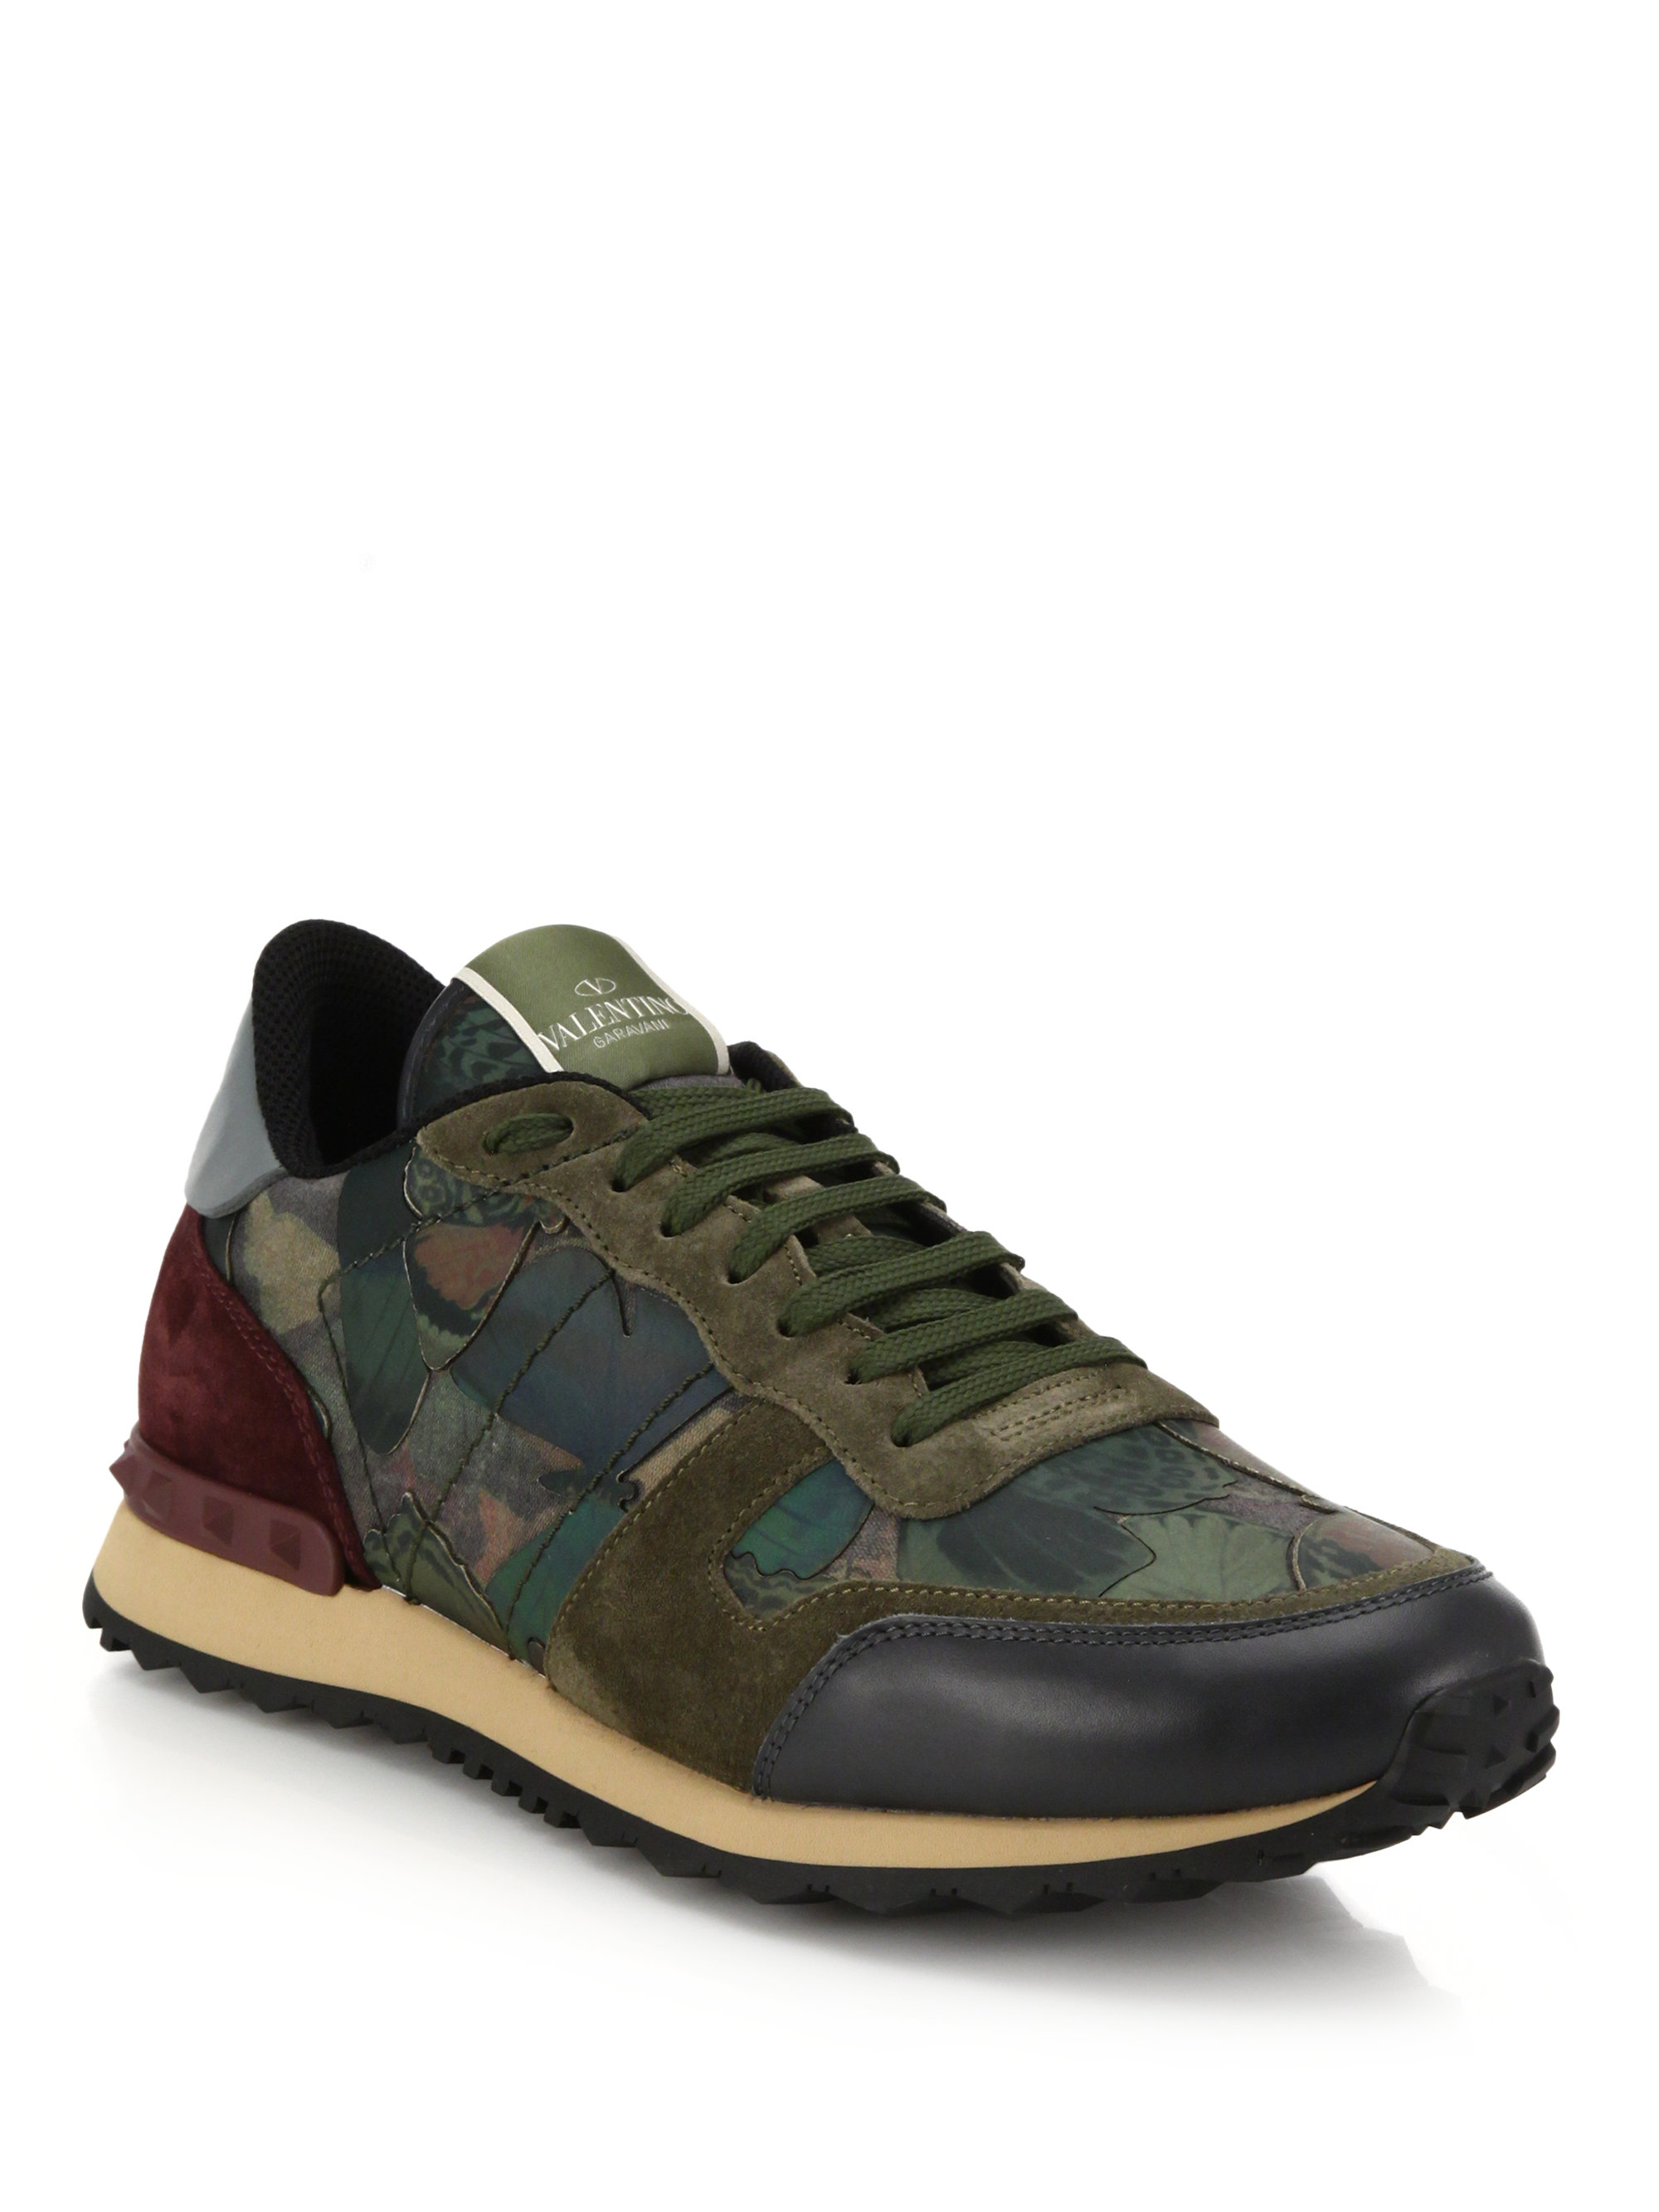 valentino camo sneakers 28 images valentino garavani rockrunner camouflage sneakers in. Black Bedroom Furniture Sets. Home Design Ideas